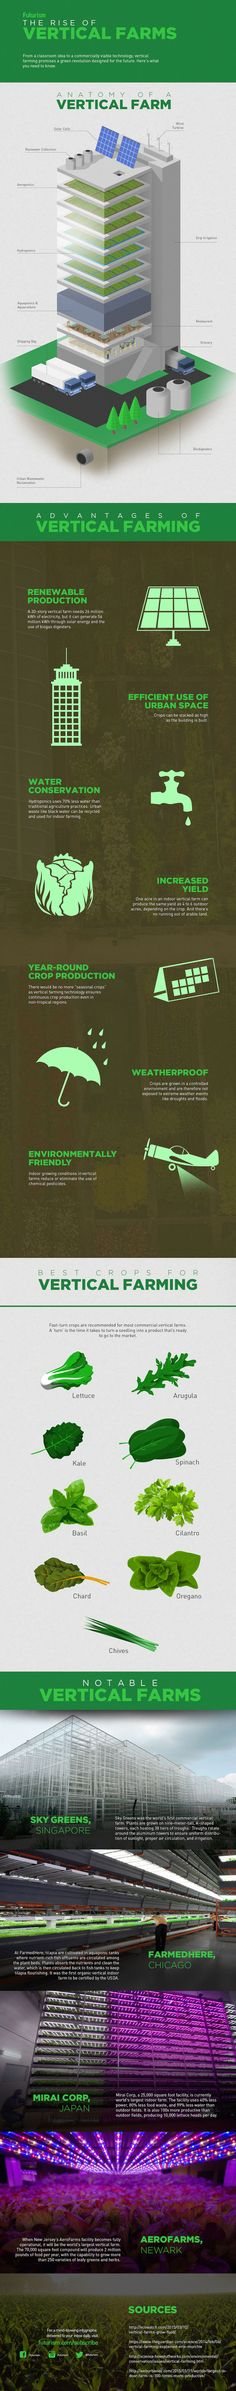 Infographic: How Vertical Farming Works